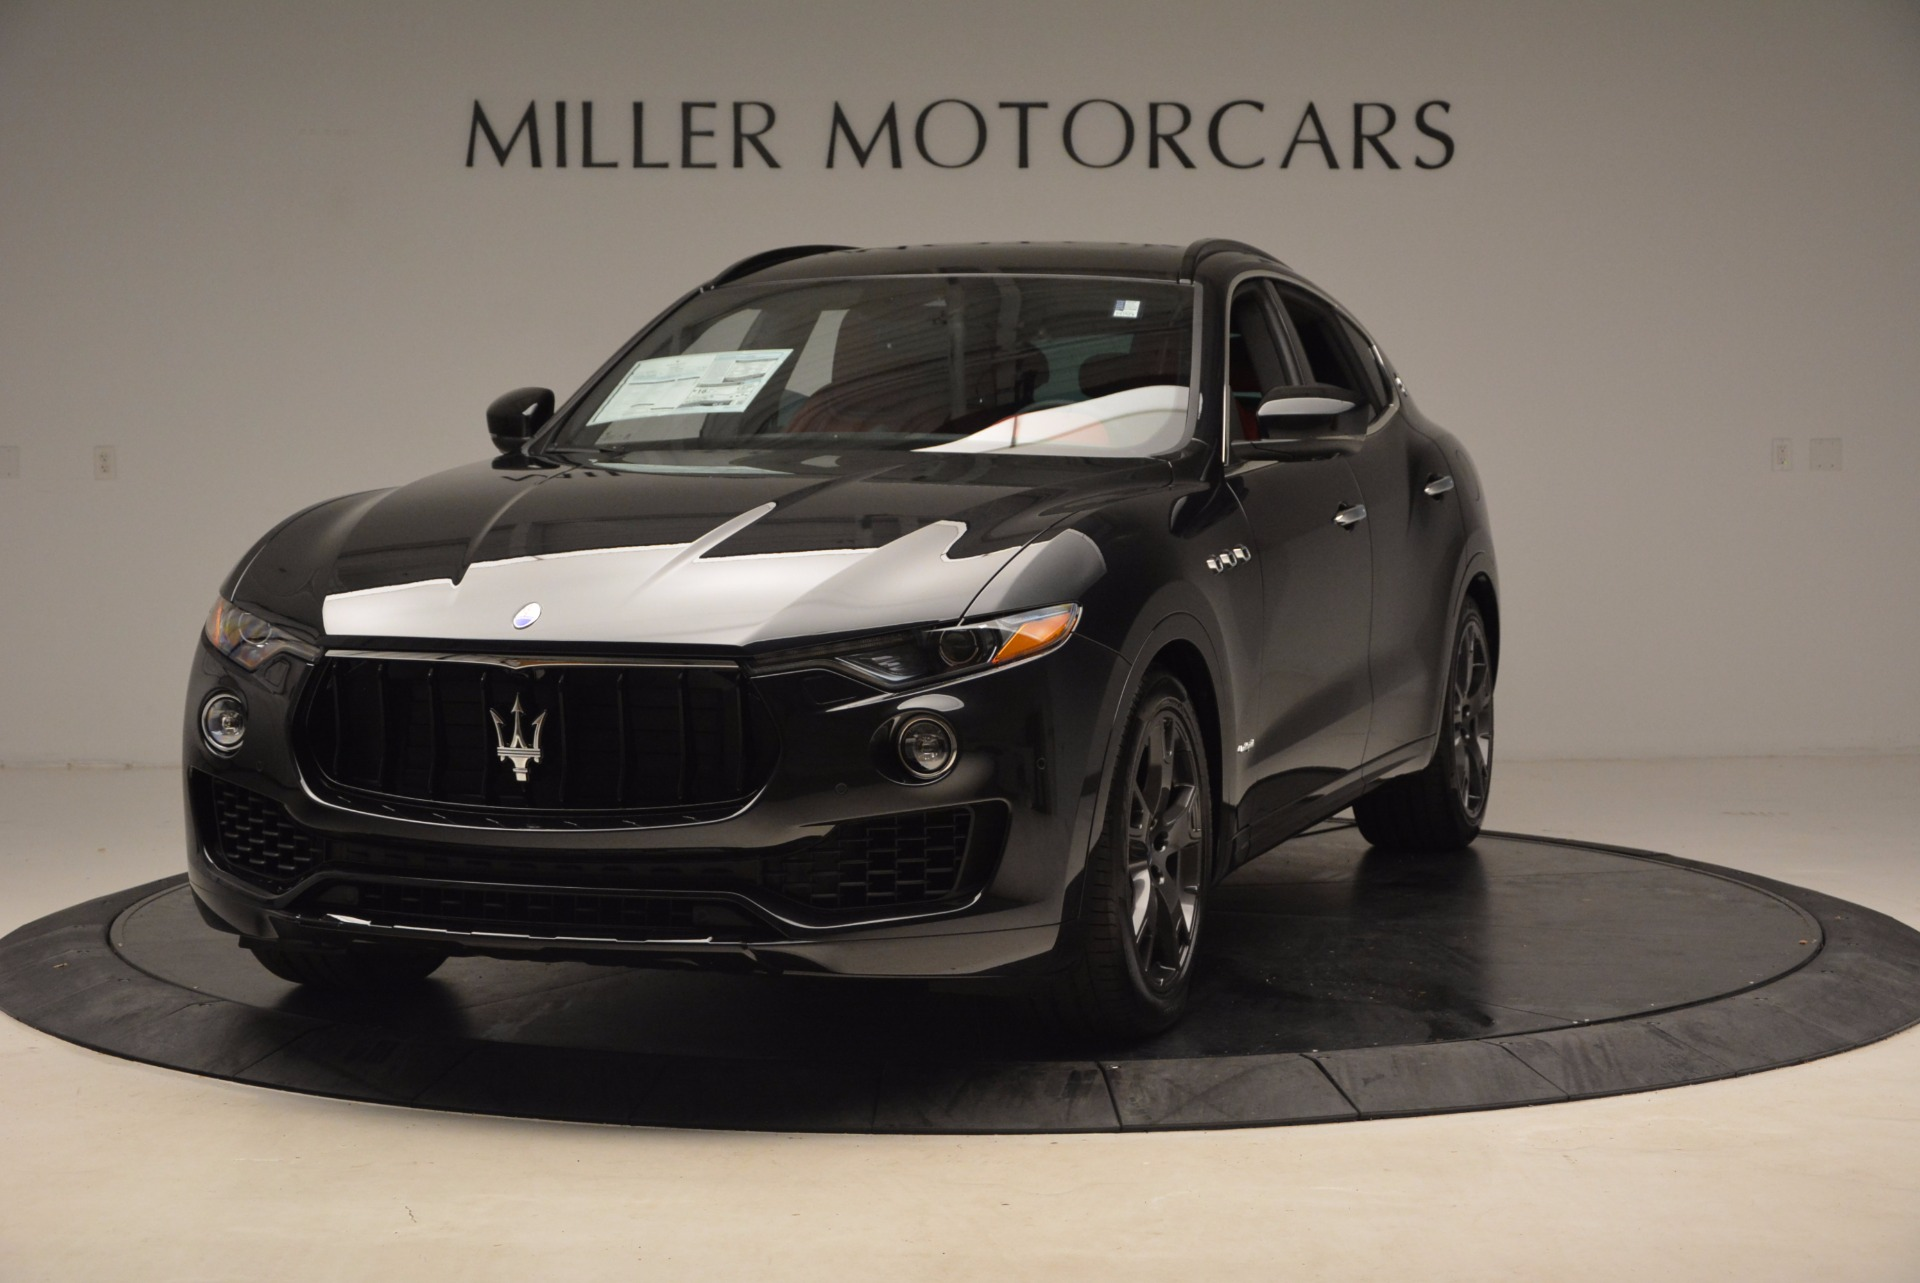 New 2018 Maserati Levante S Q4 for sale Sold at Rolls-Royce Motor Cars Greenwich in Greenwich CT 06830 1